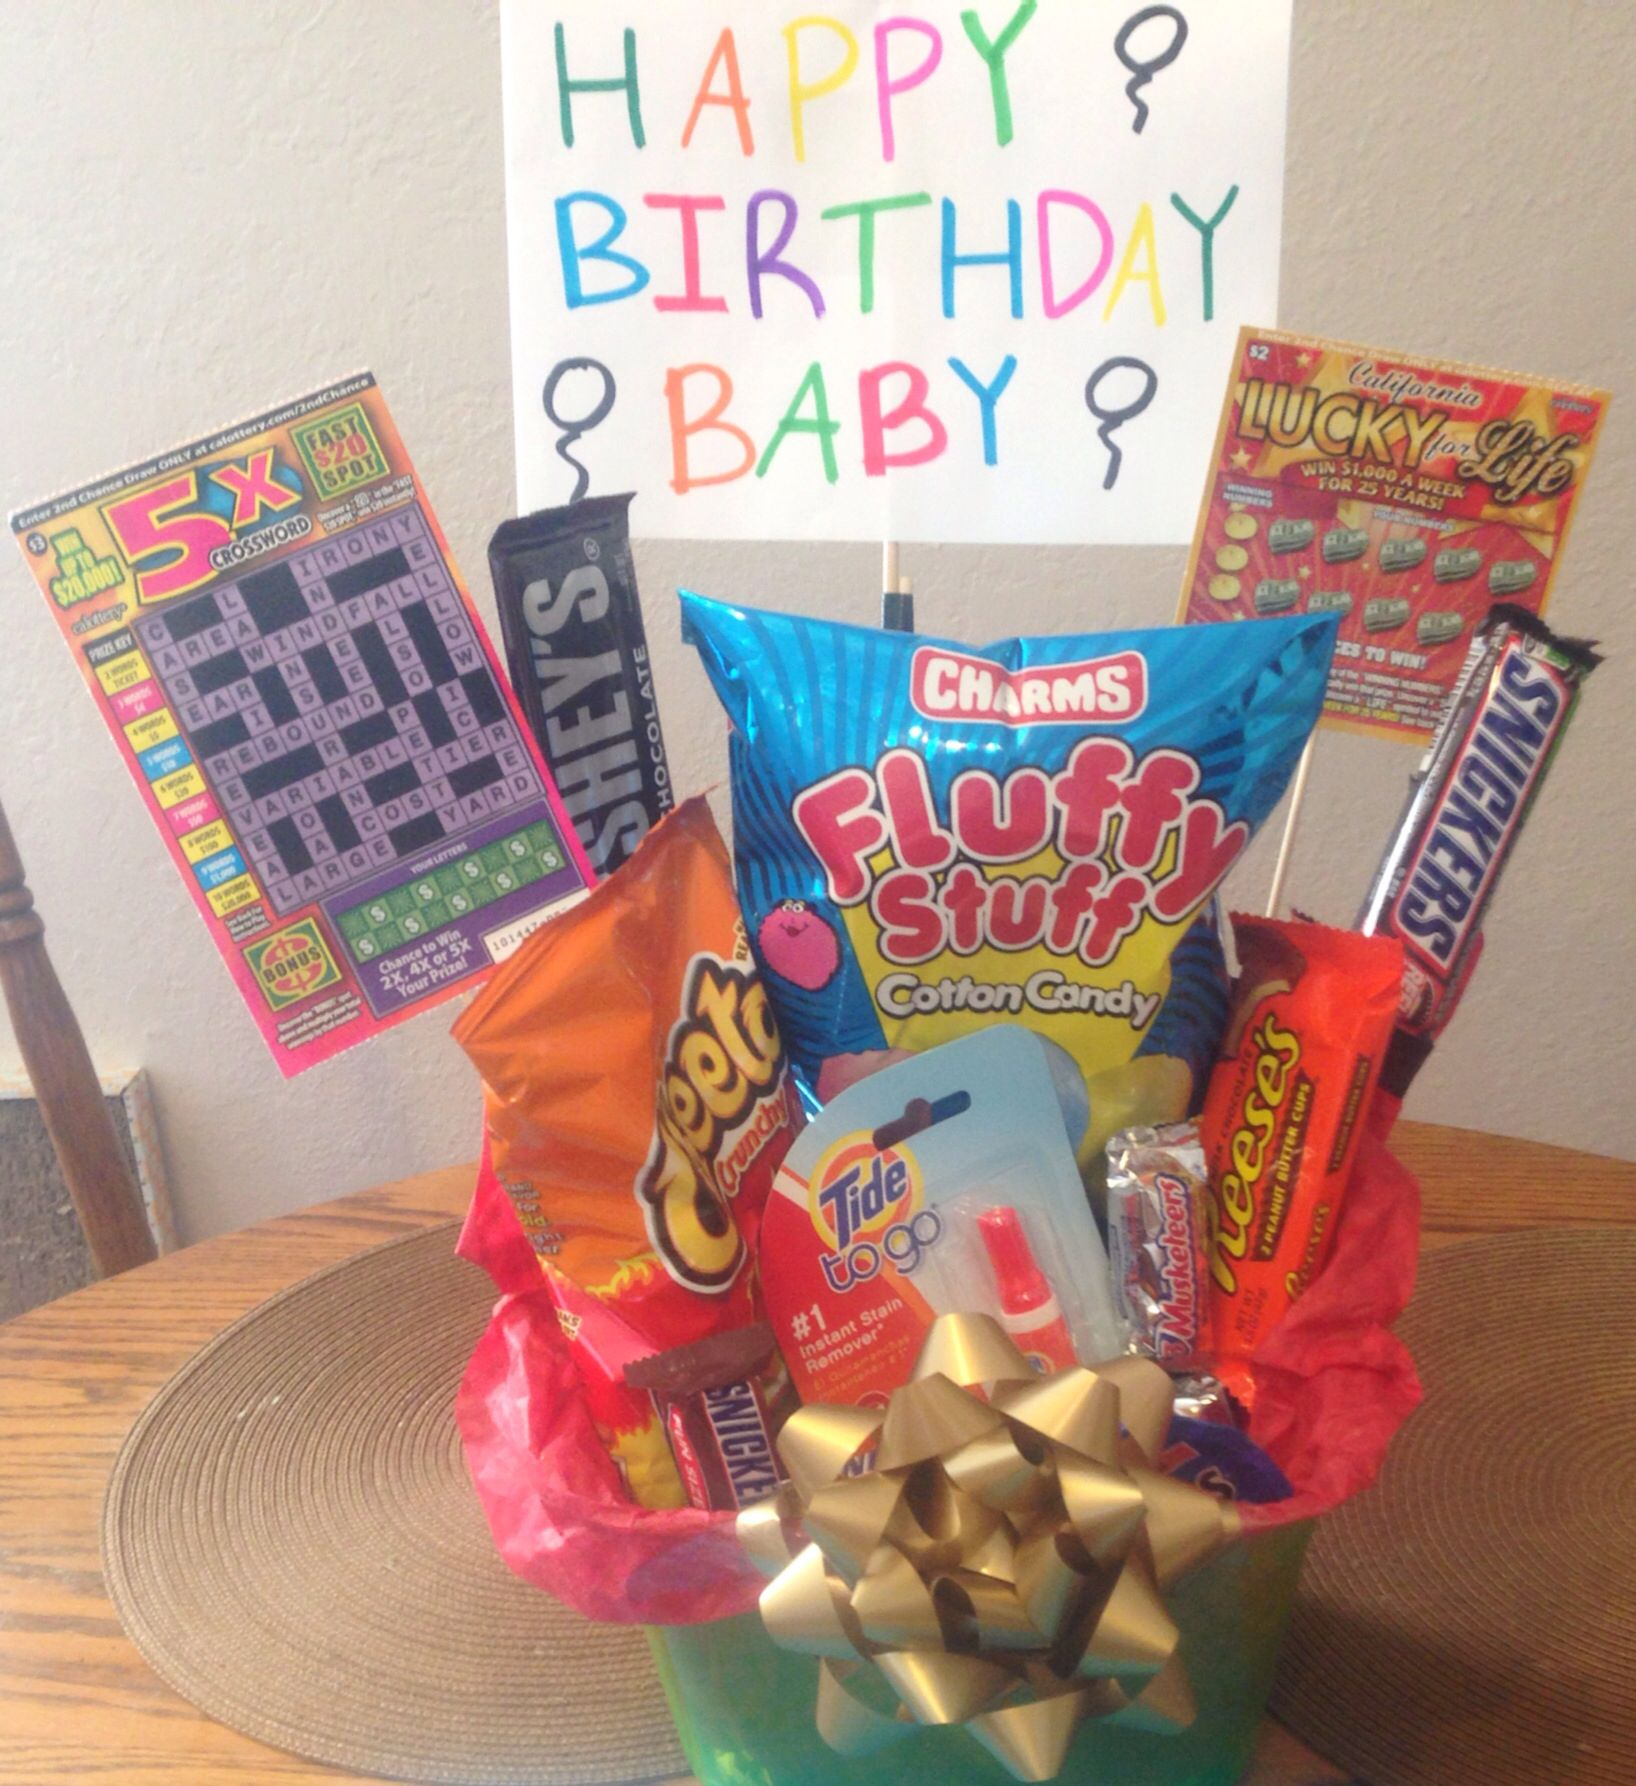 Gift Ideas For Boyfriends 22nd Birthday